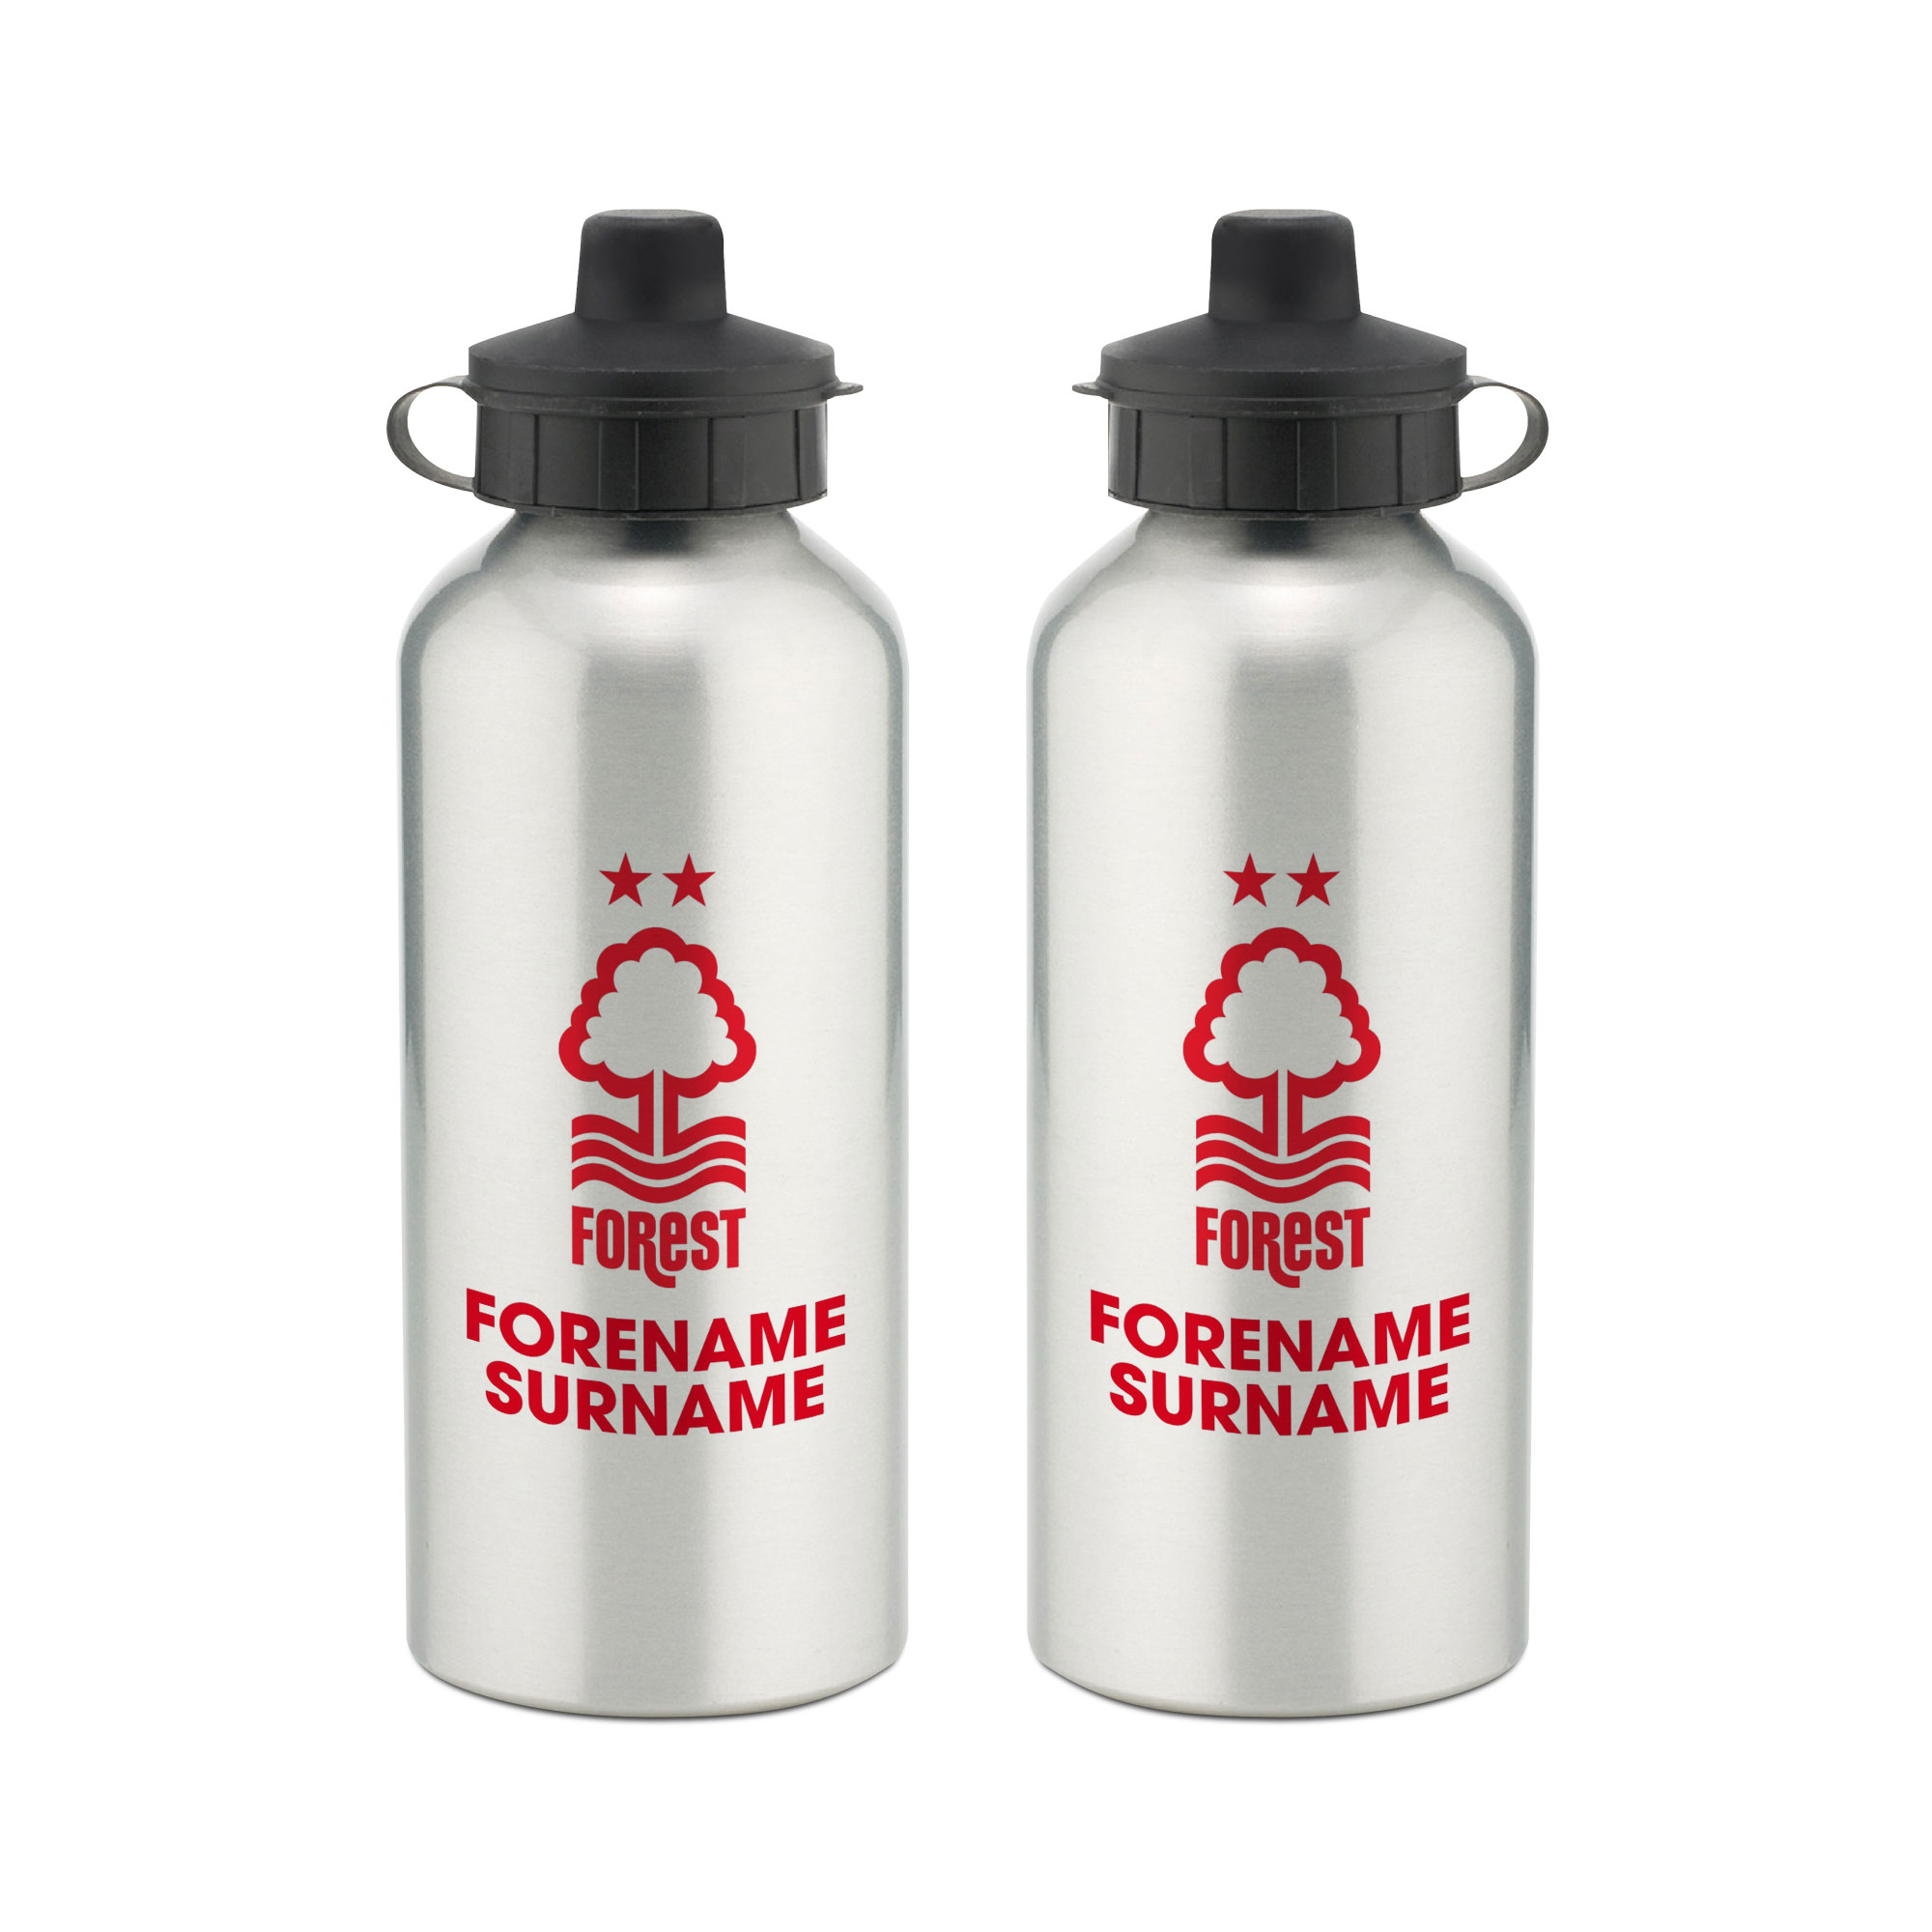 Nottingham Forest Bold Crest Water Bottle